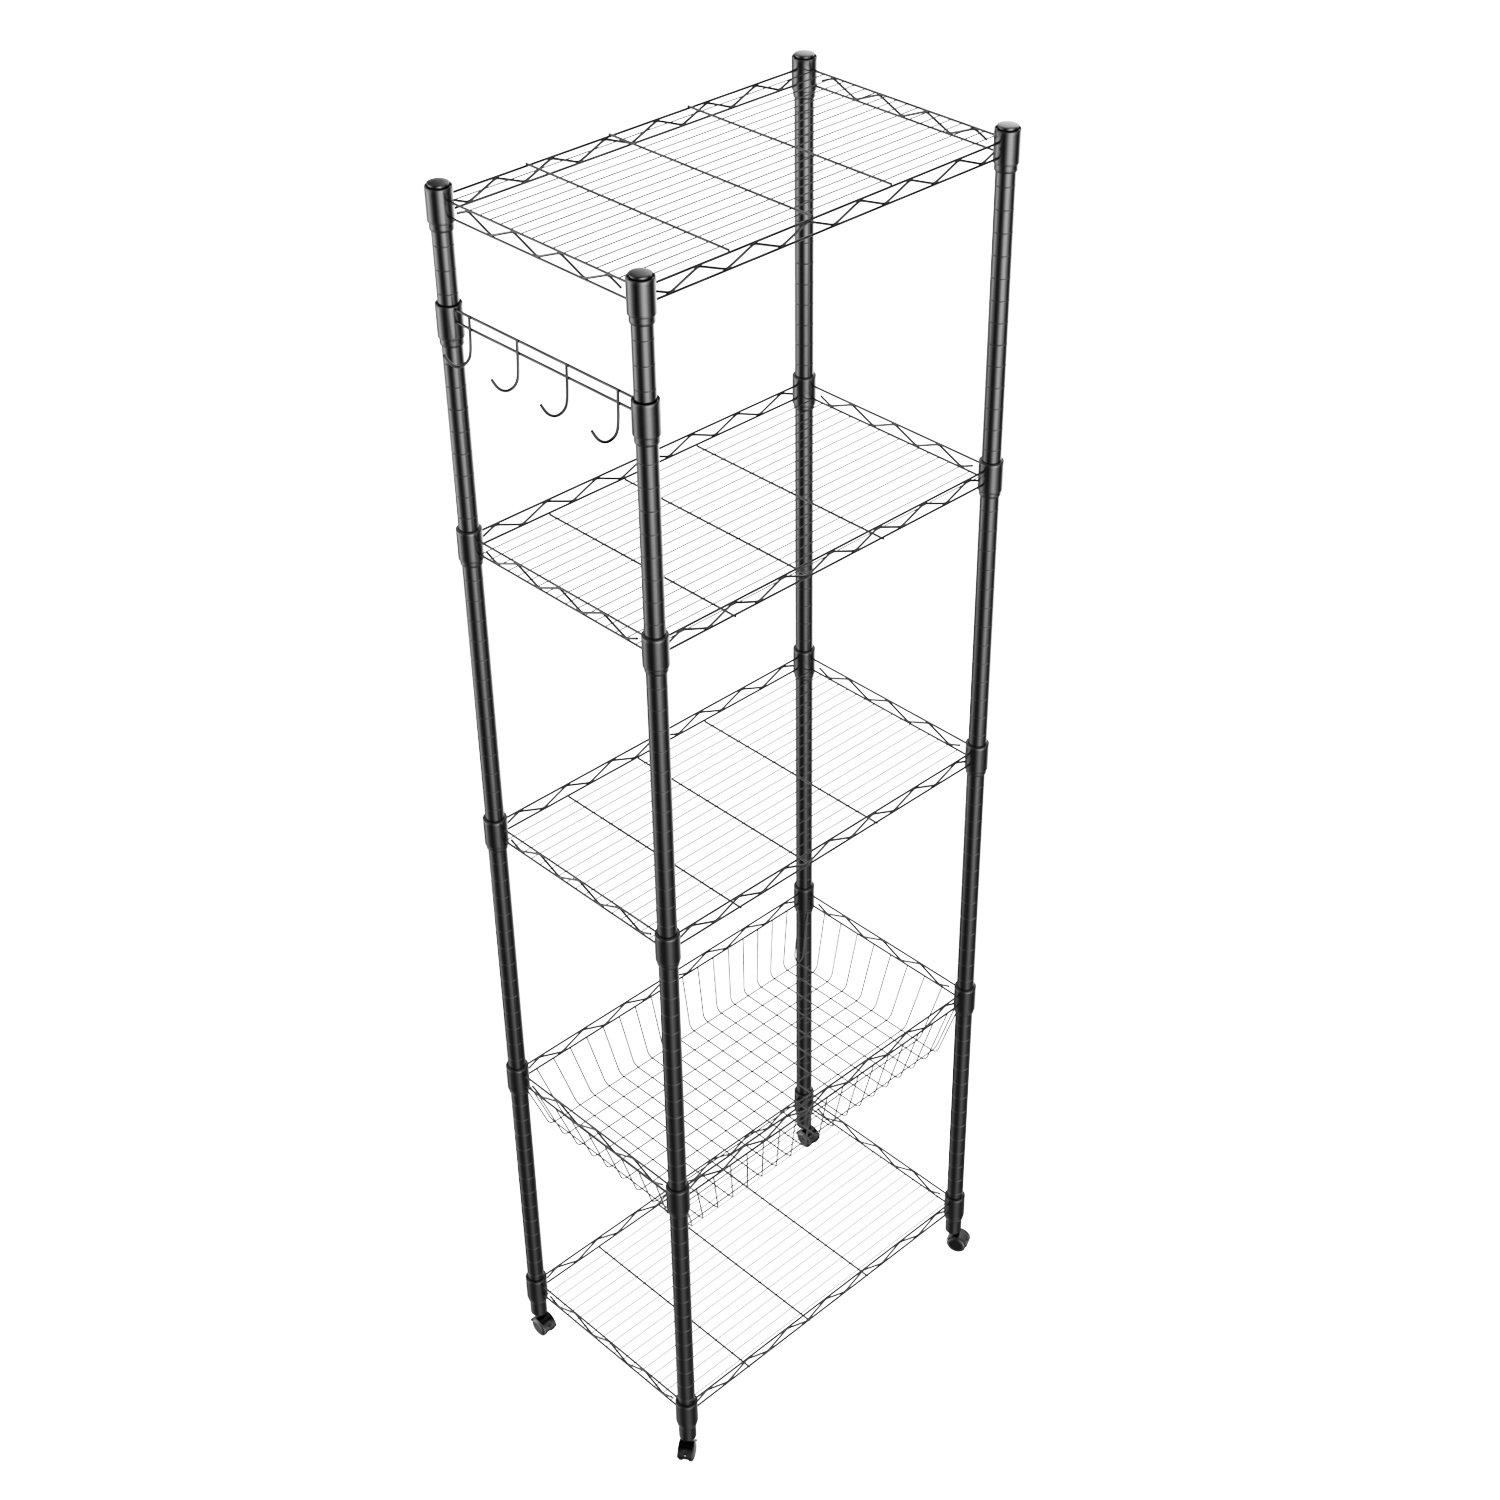 5 Tier Steel Wire Shelving with Wheels, Shelving Storage Organizer Rack for Kitchen Bathroom Balcony Living Room 71inch - Black [US STOCK] by ferty (Image #9)